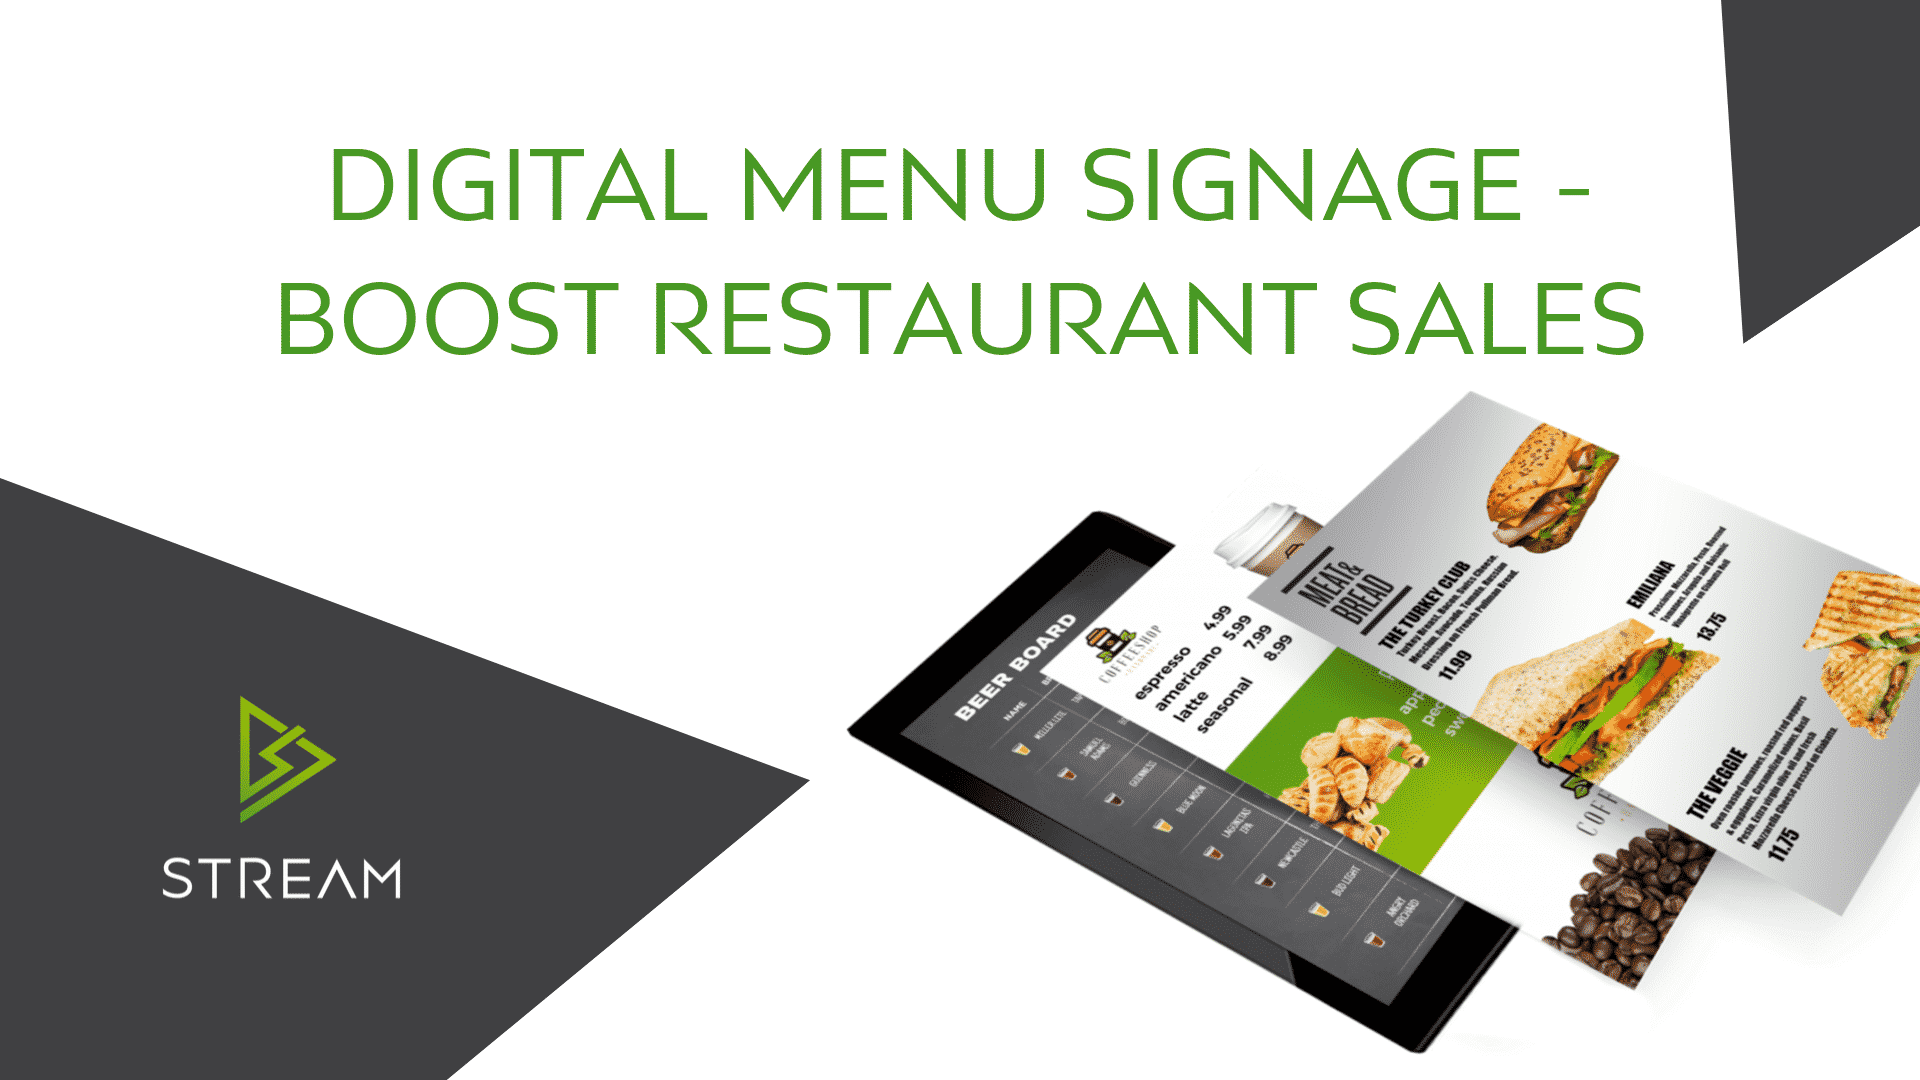 Digital Menu Signage – Boost Restaurant Sales